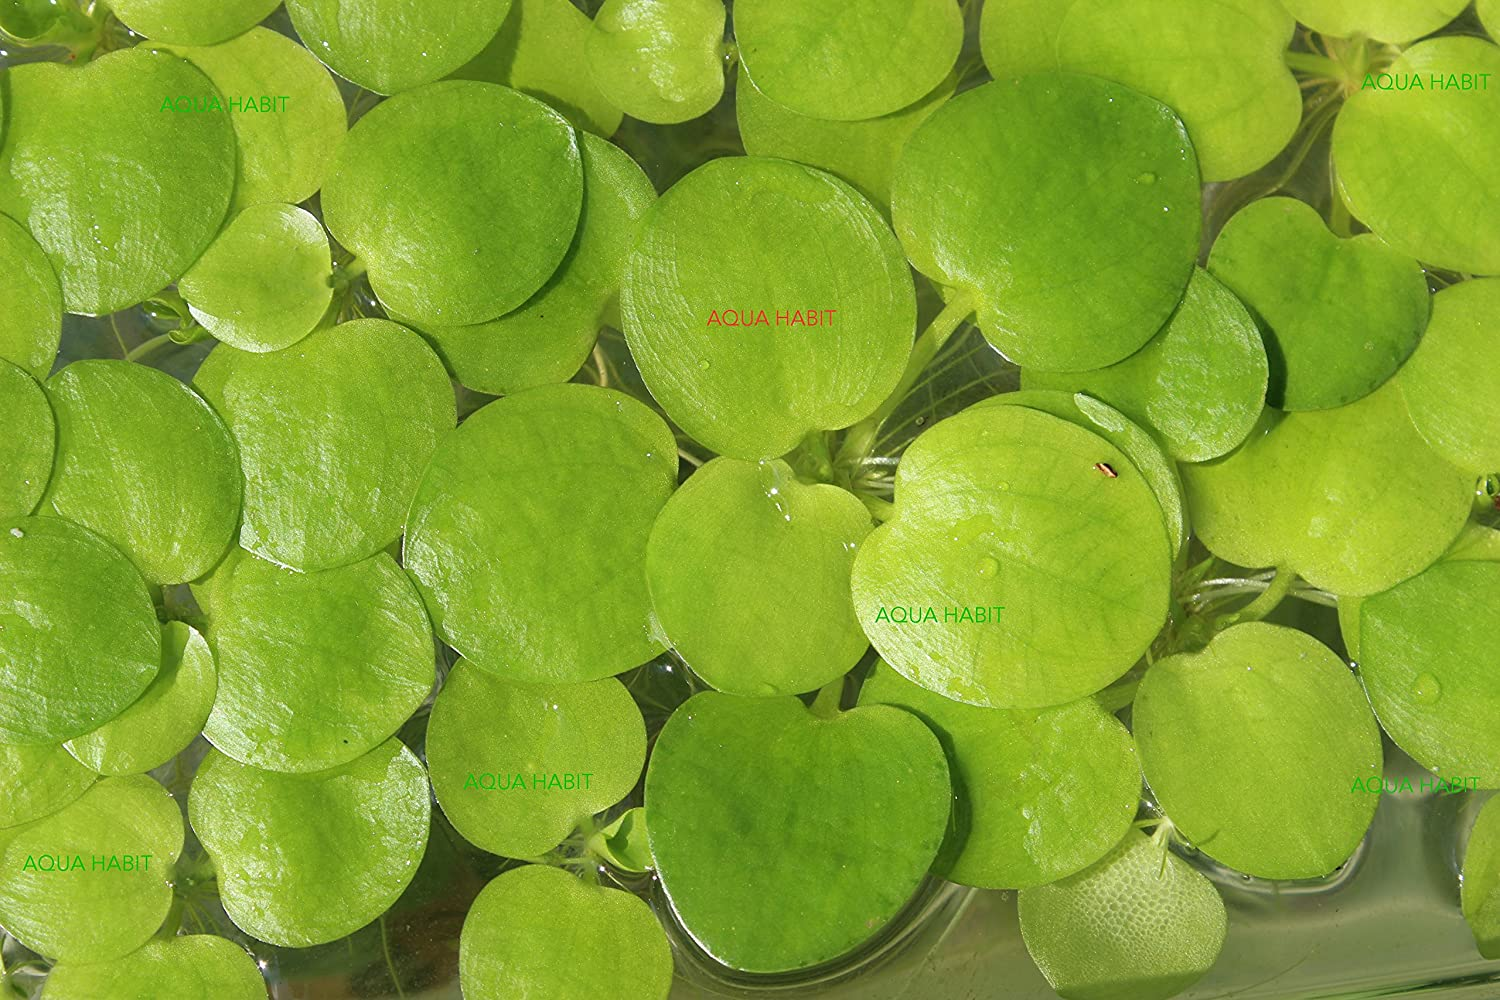 Amazon Frogbit (Limnobium Laevigatum) - 3/6/12 Live Aquatic Plants by Aqua Habit (6) AQUAHABIT